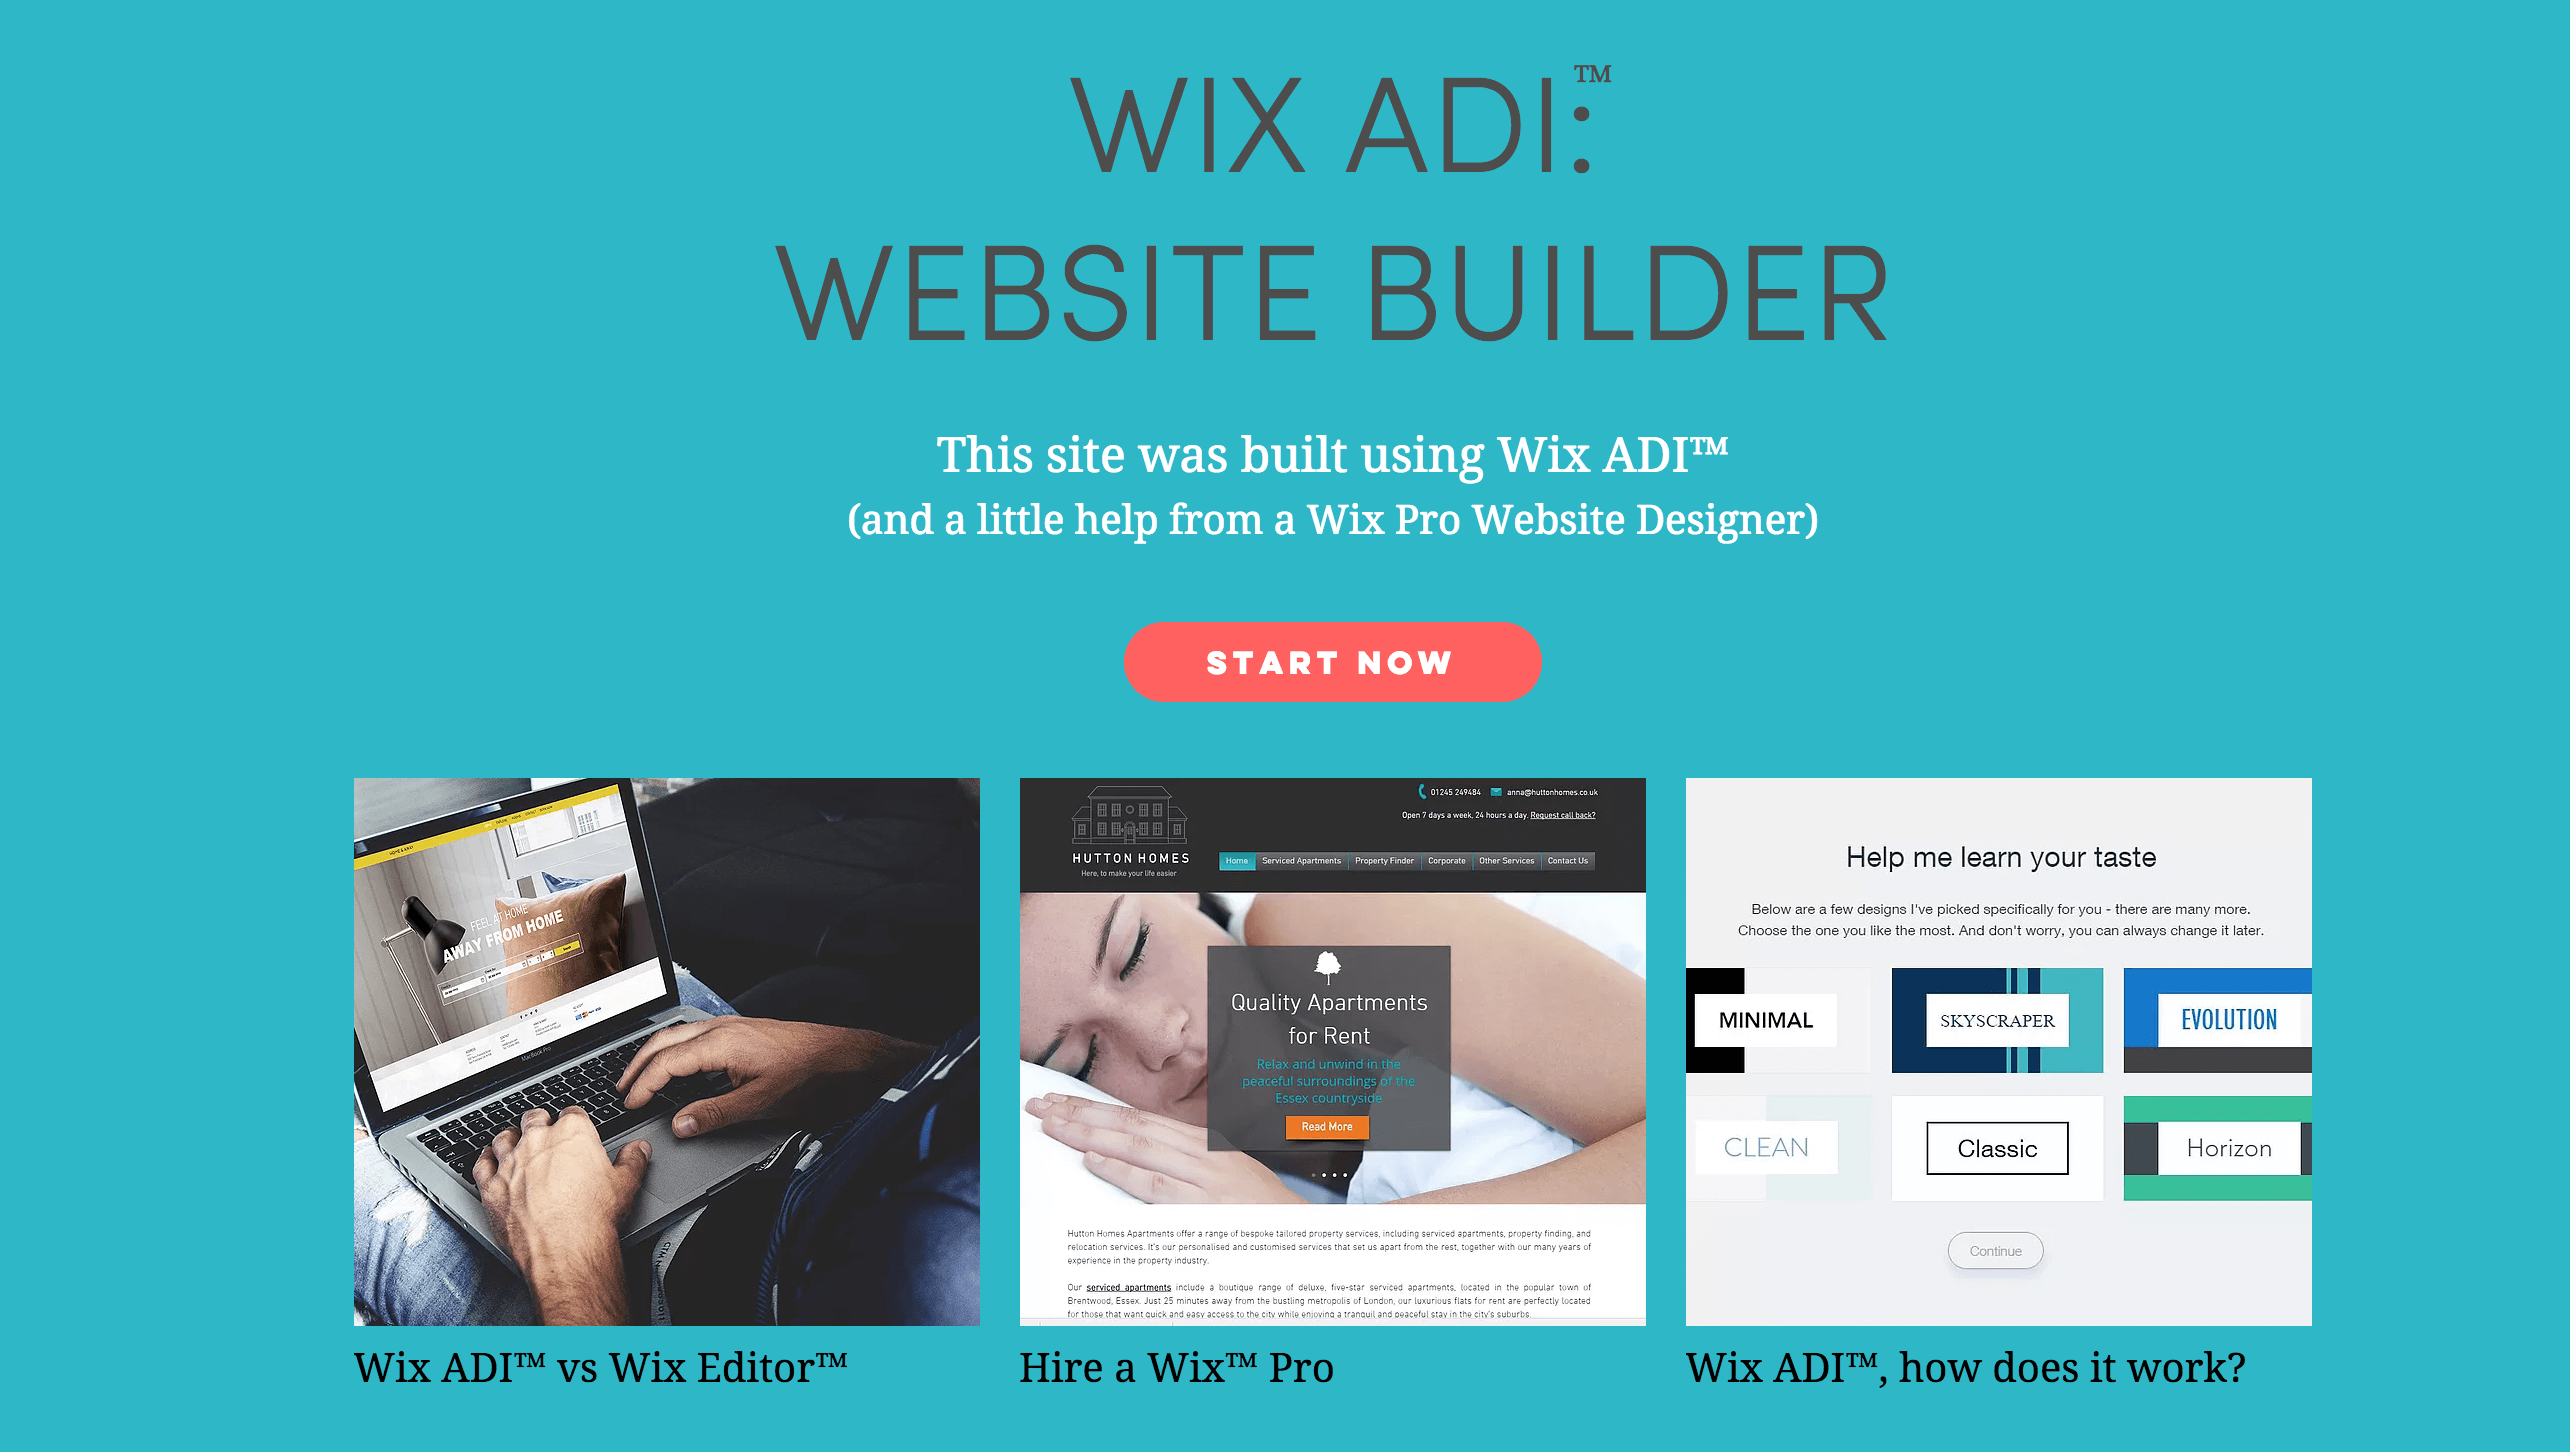 A website created using Wix ADI.